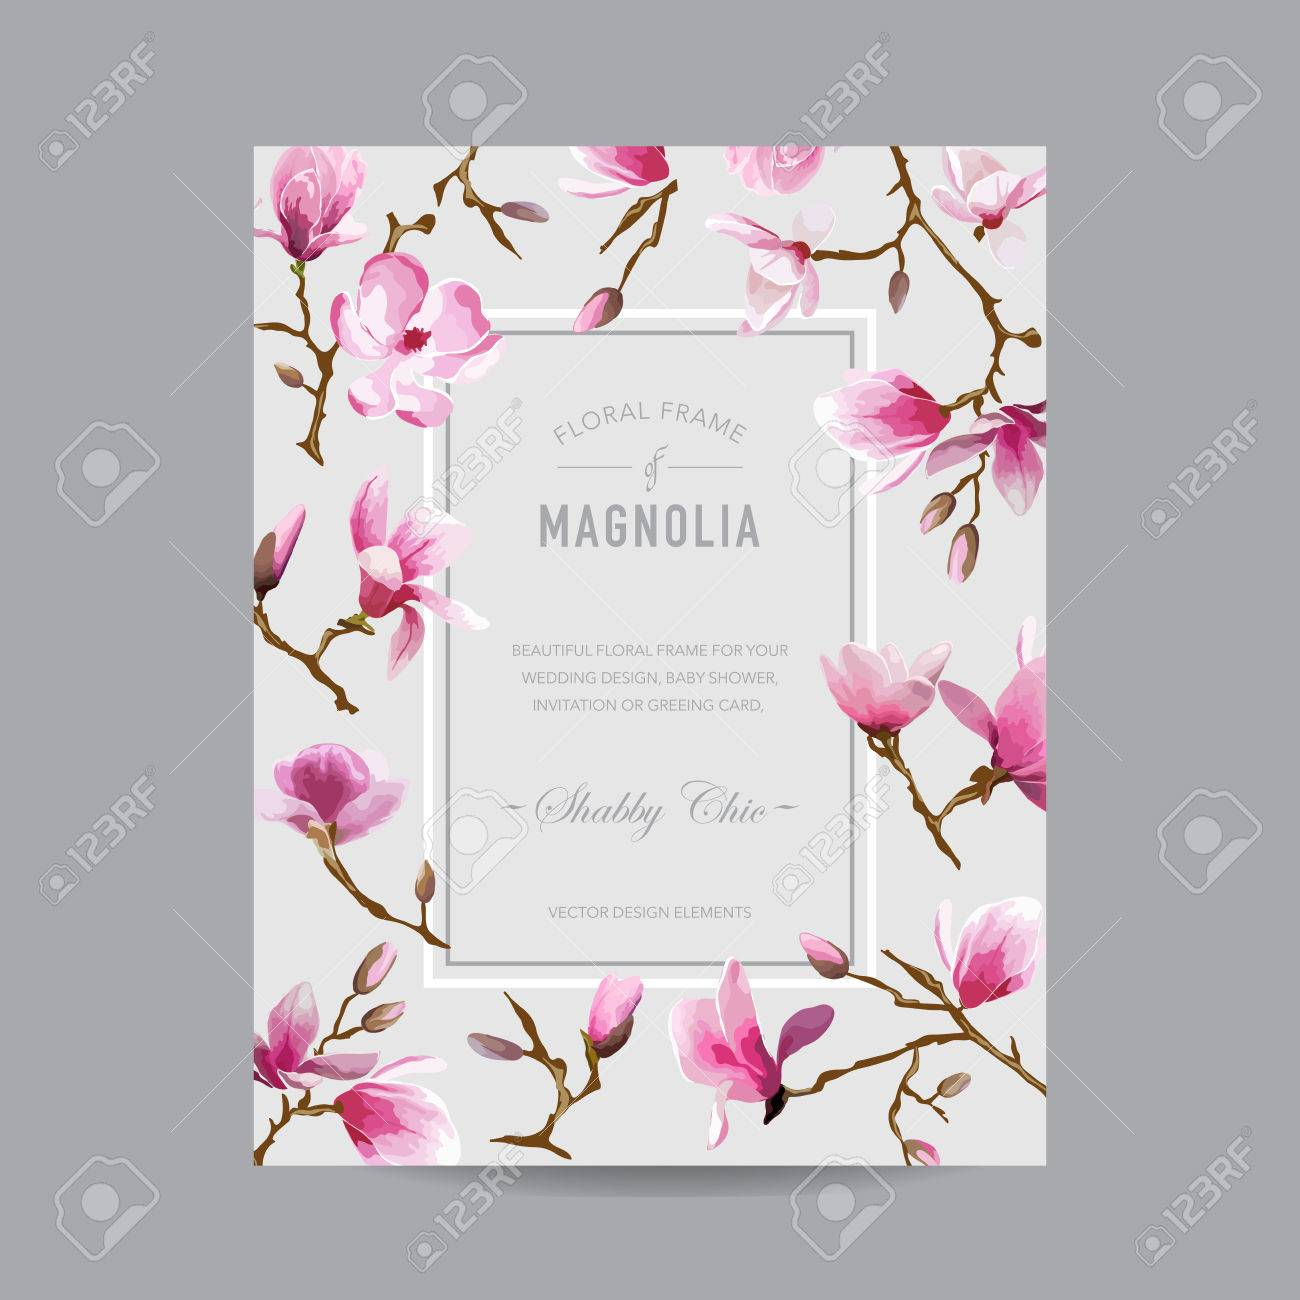 Vintage Floral Magnolia Frame - For Invitation, Wedding, Baby ...